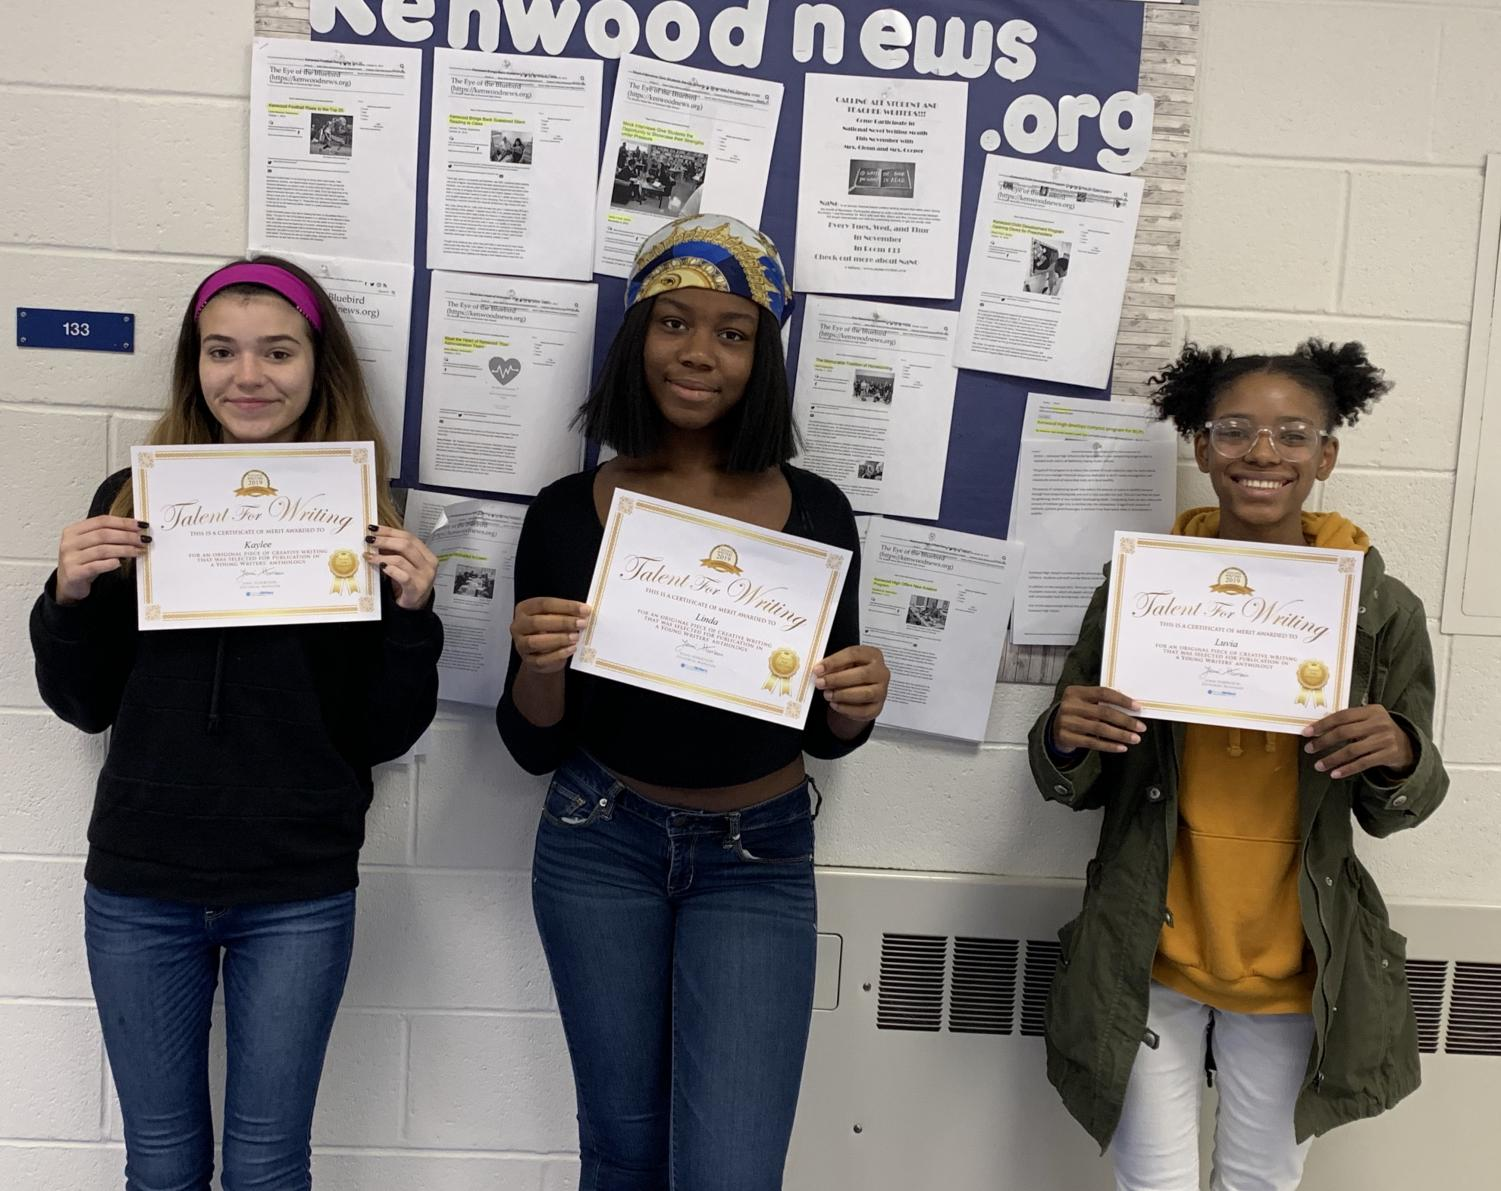 Three journalism students showcasing their announcement for their upcoming short story in a book anthology.